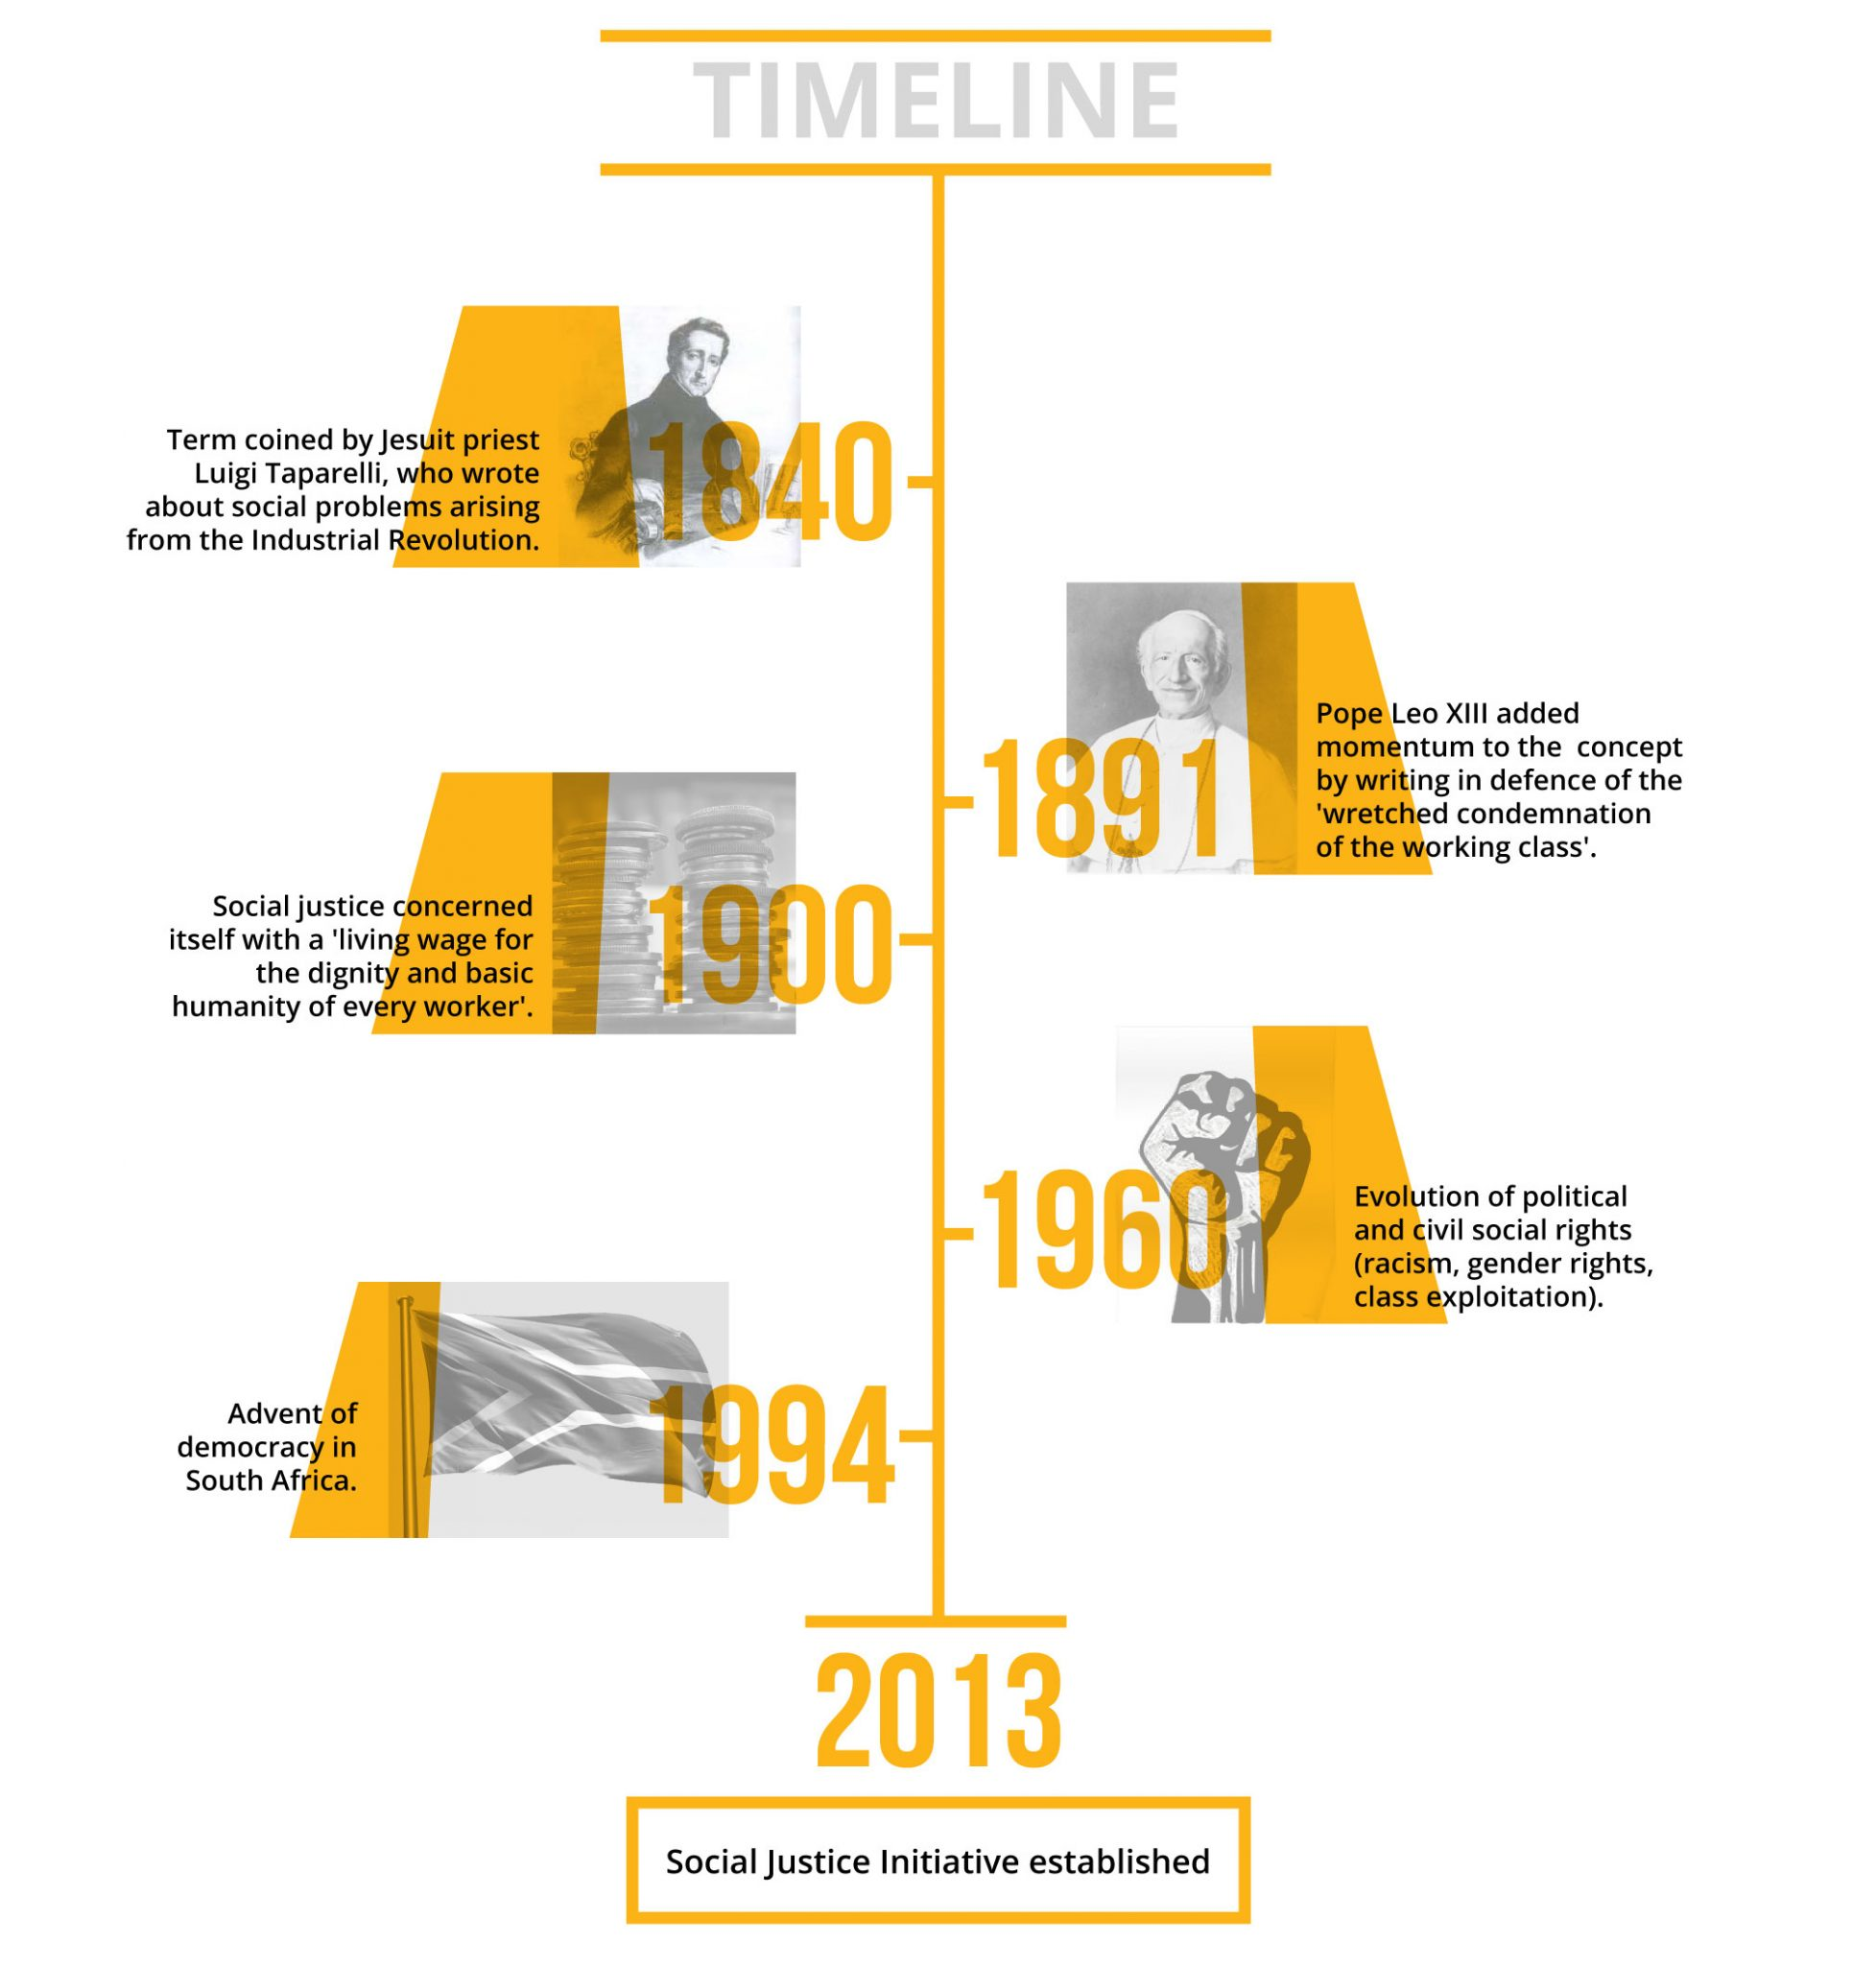 SJI Timeline of Work and Impact